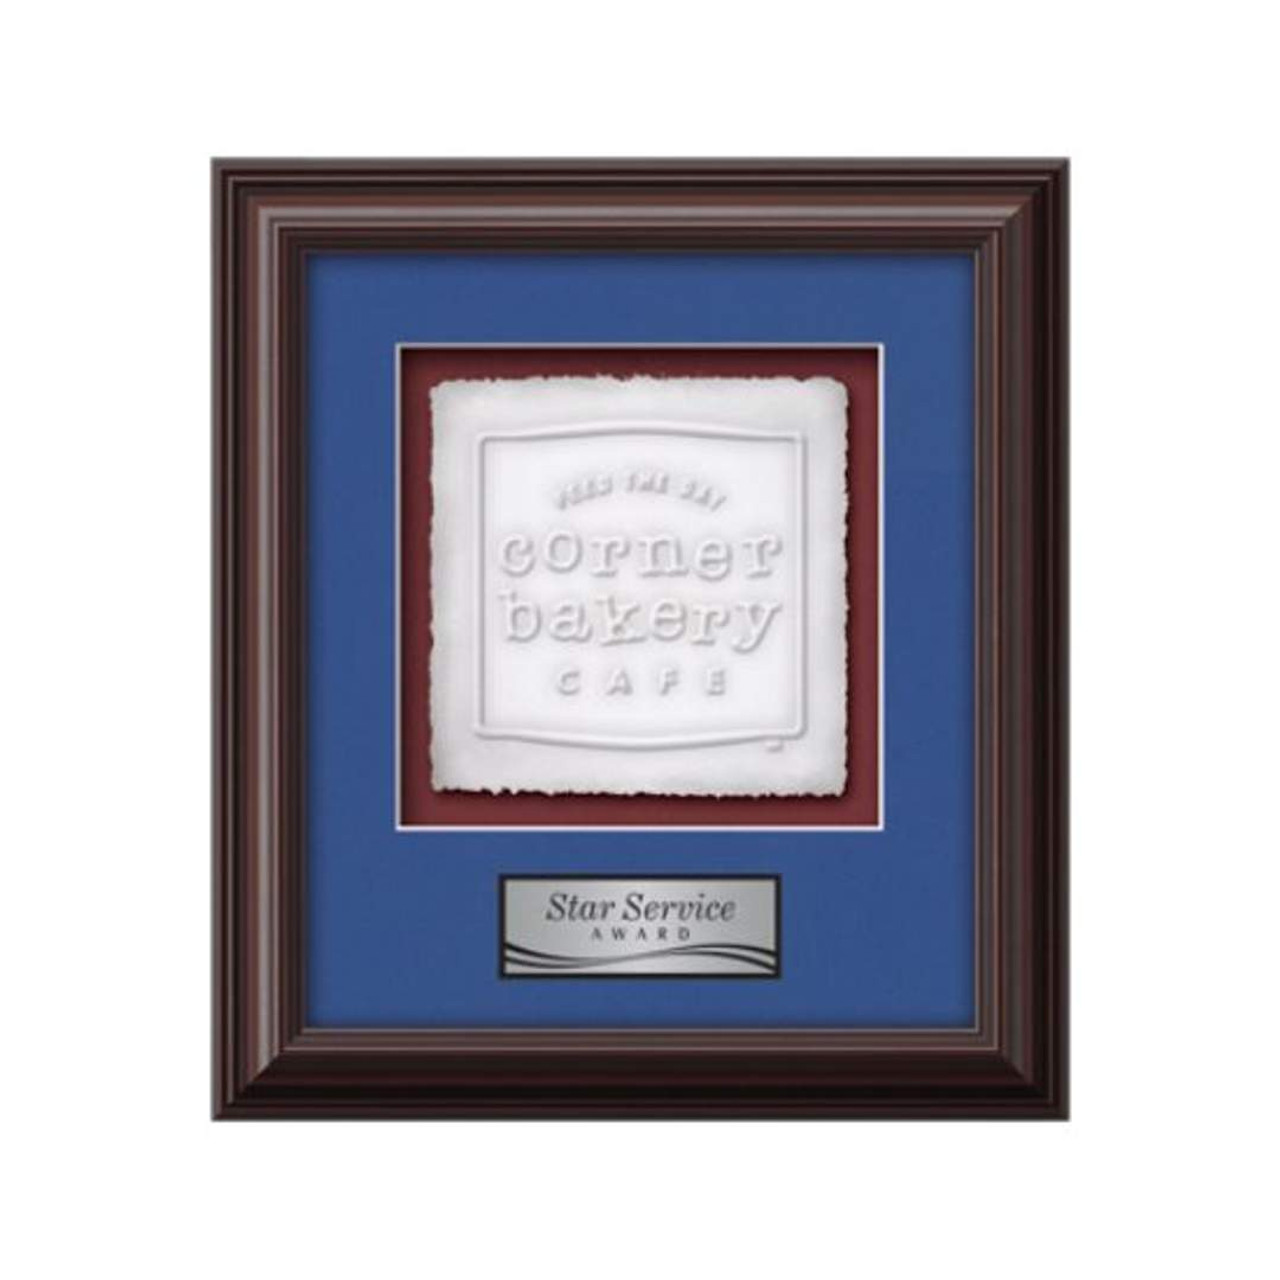 Waterleaf Framed Awards